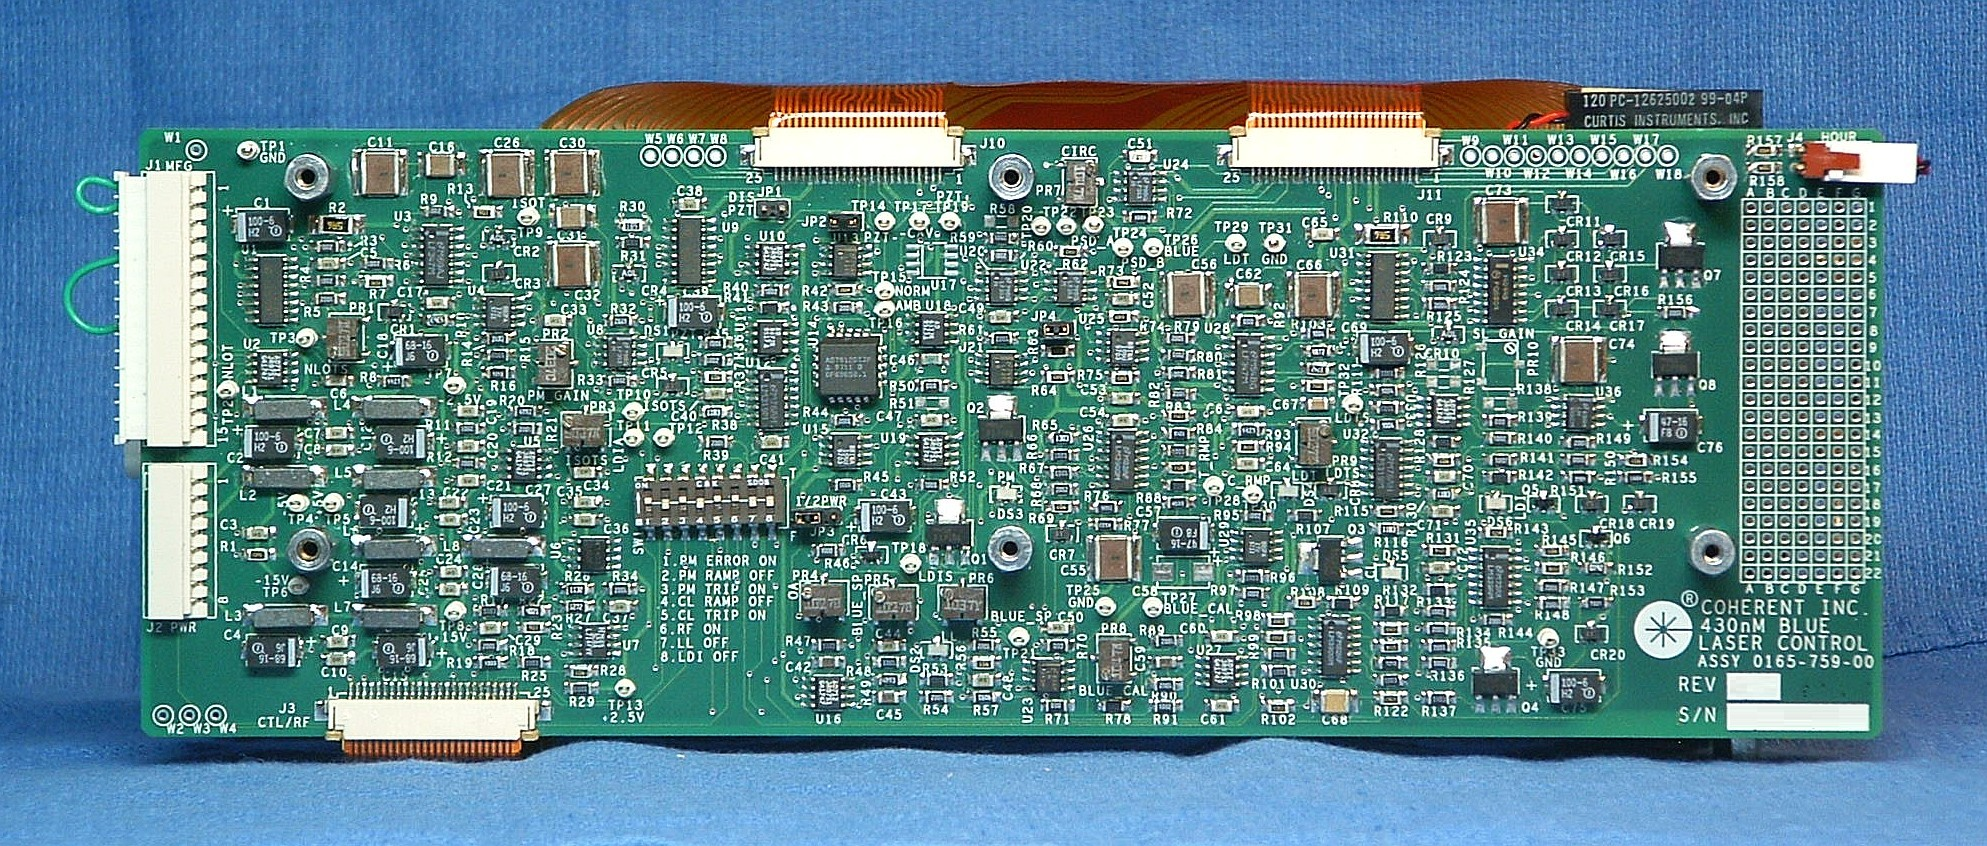 Playstation Console39s Printed Circuit Board Ready For Rework Repair